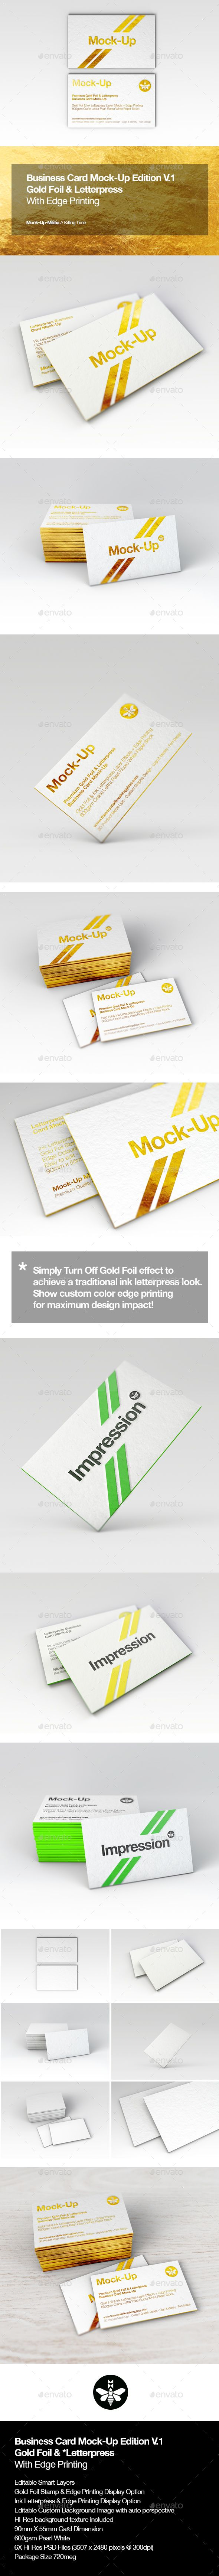 Luxury gold foil ink letterpress business card mock up luxury gold foil ink letterpress business card mockup photoshop psd realistic bespoke available here reheart Images